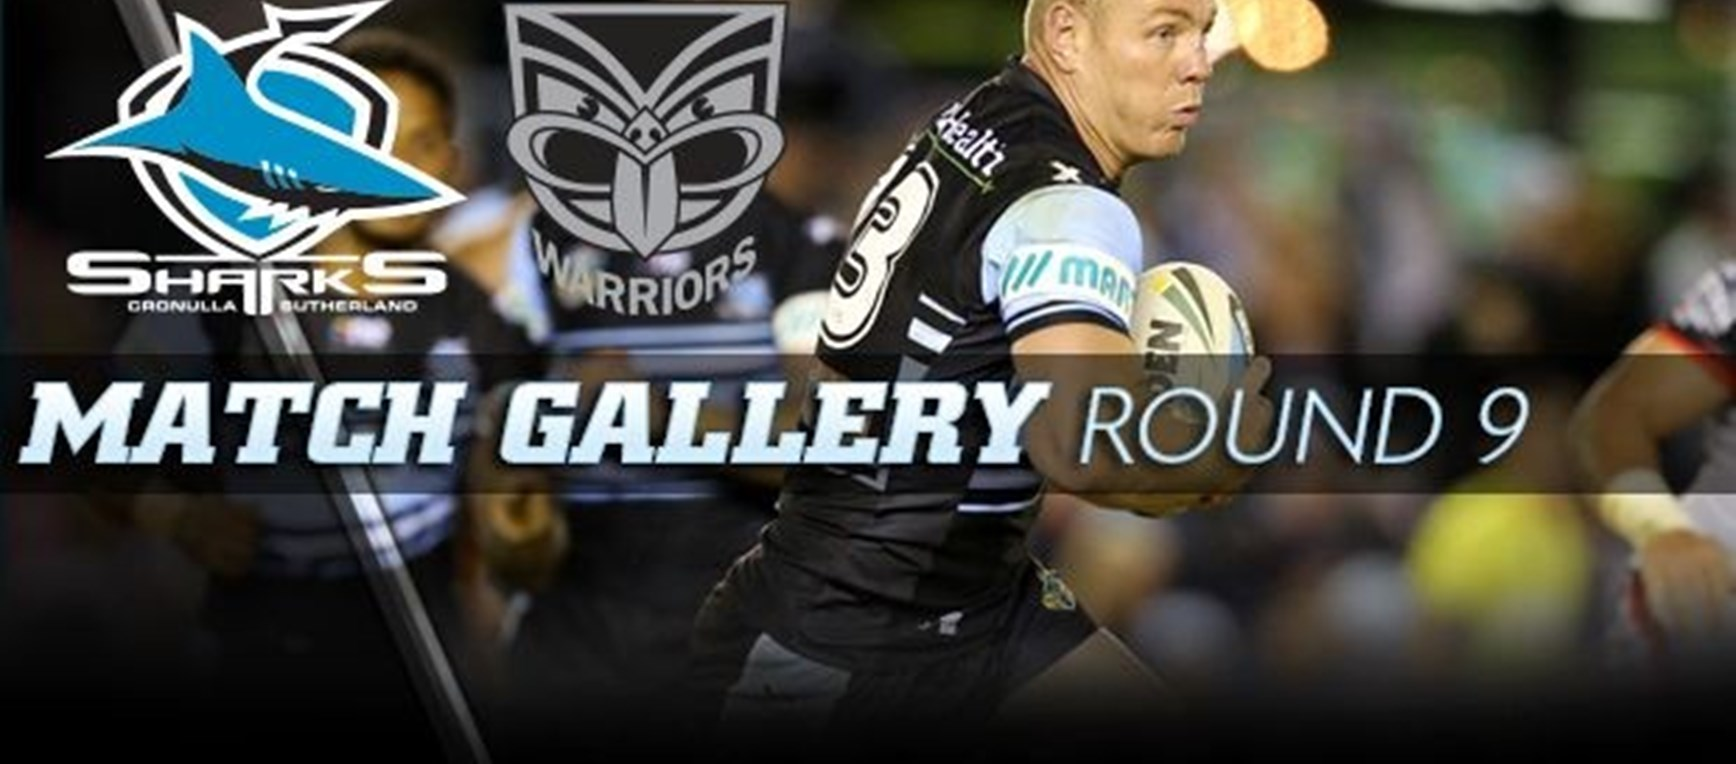 Match Gallery Sharks v Warriors